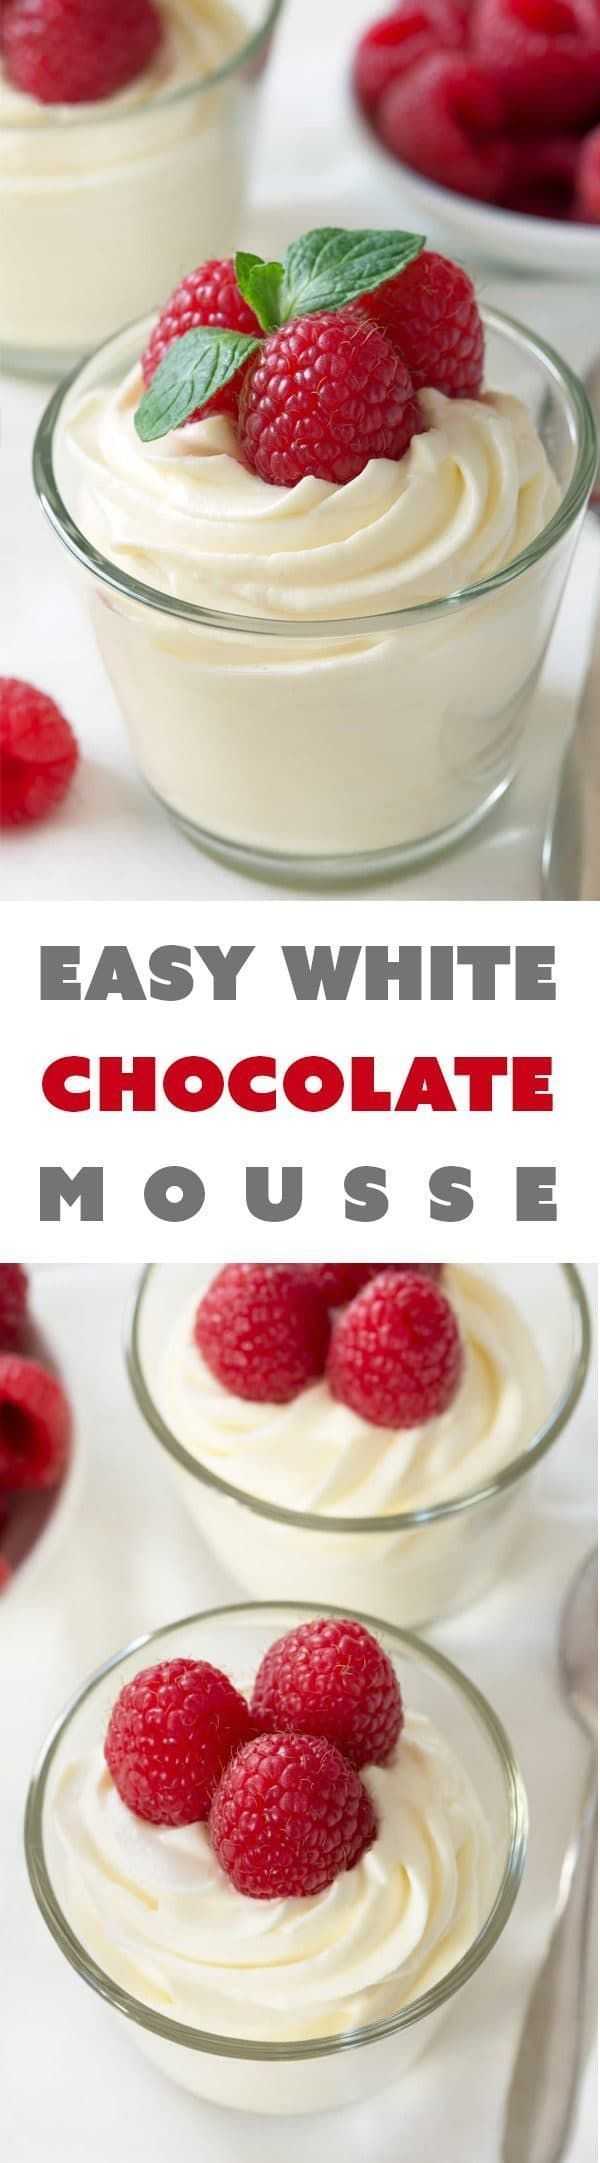 Easy white chocolate mousse made with cream cheese for an amazingly delicious treat that's perfect for any day of the week.